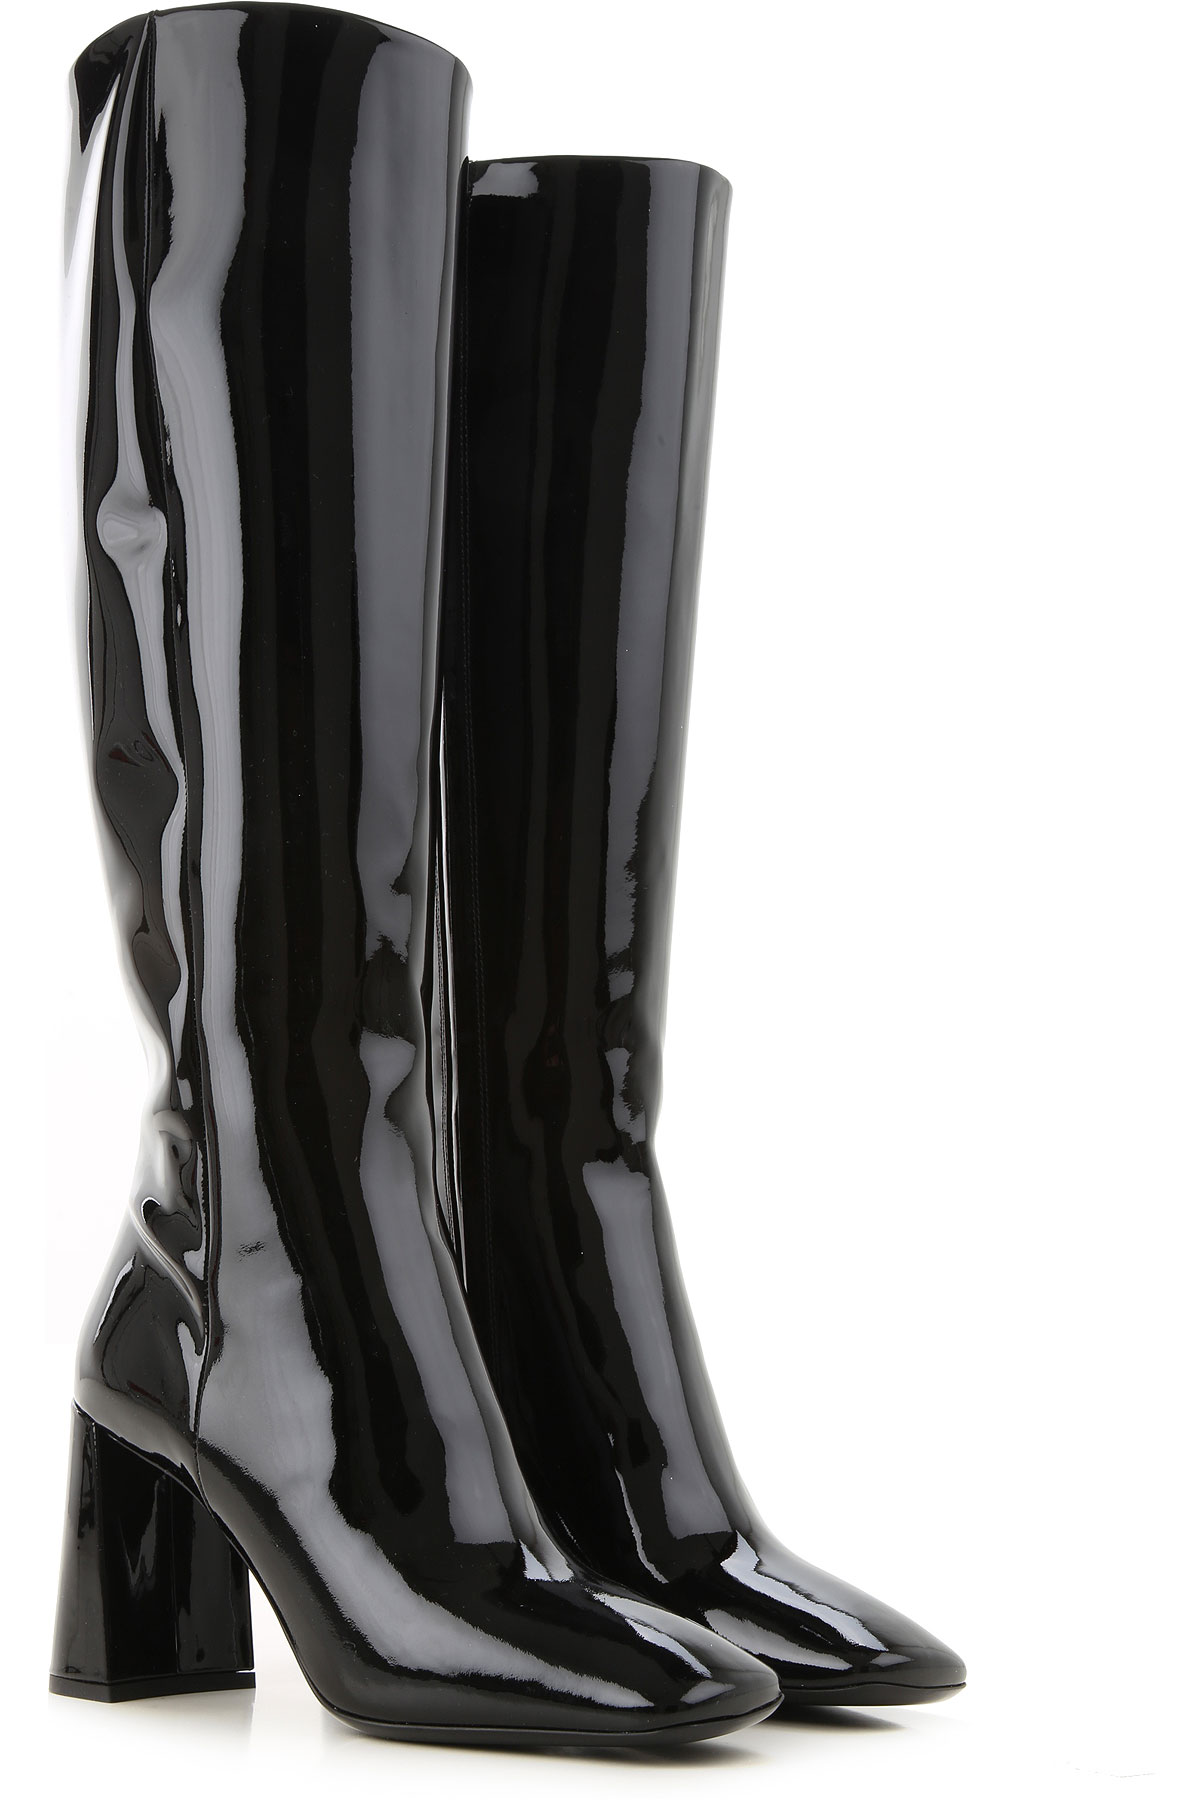 Prada Boots for Women, Booties On Sale, Black, Patent Leather, 2019, 10 11 5.5 6 6.5 7 7.5 8 8.5